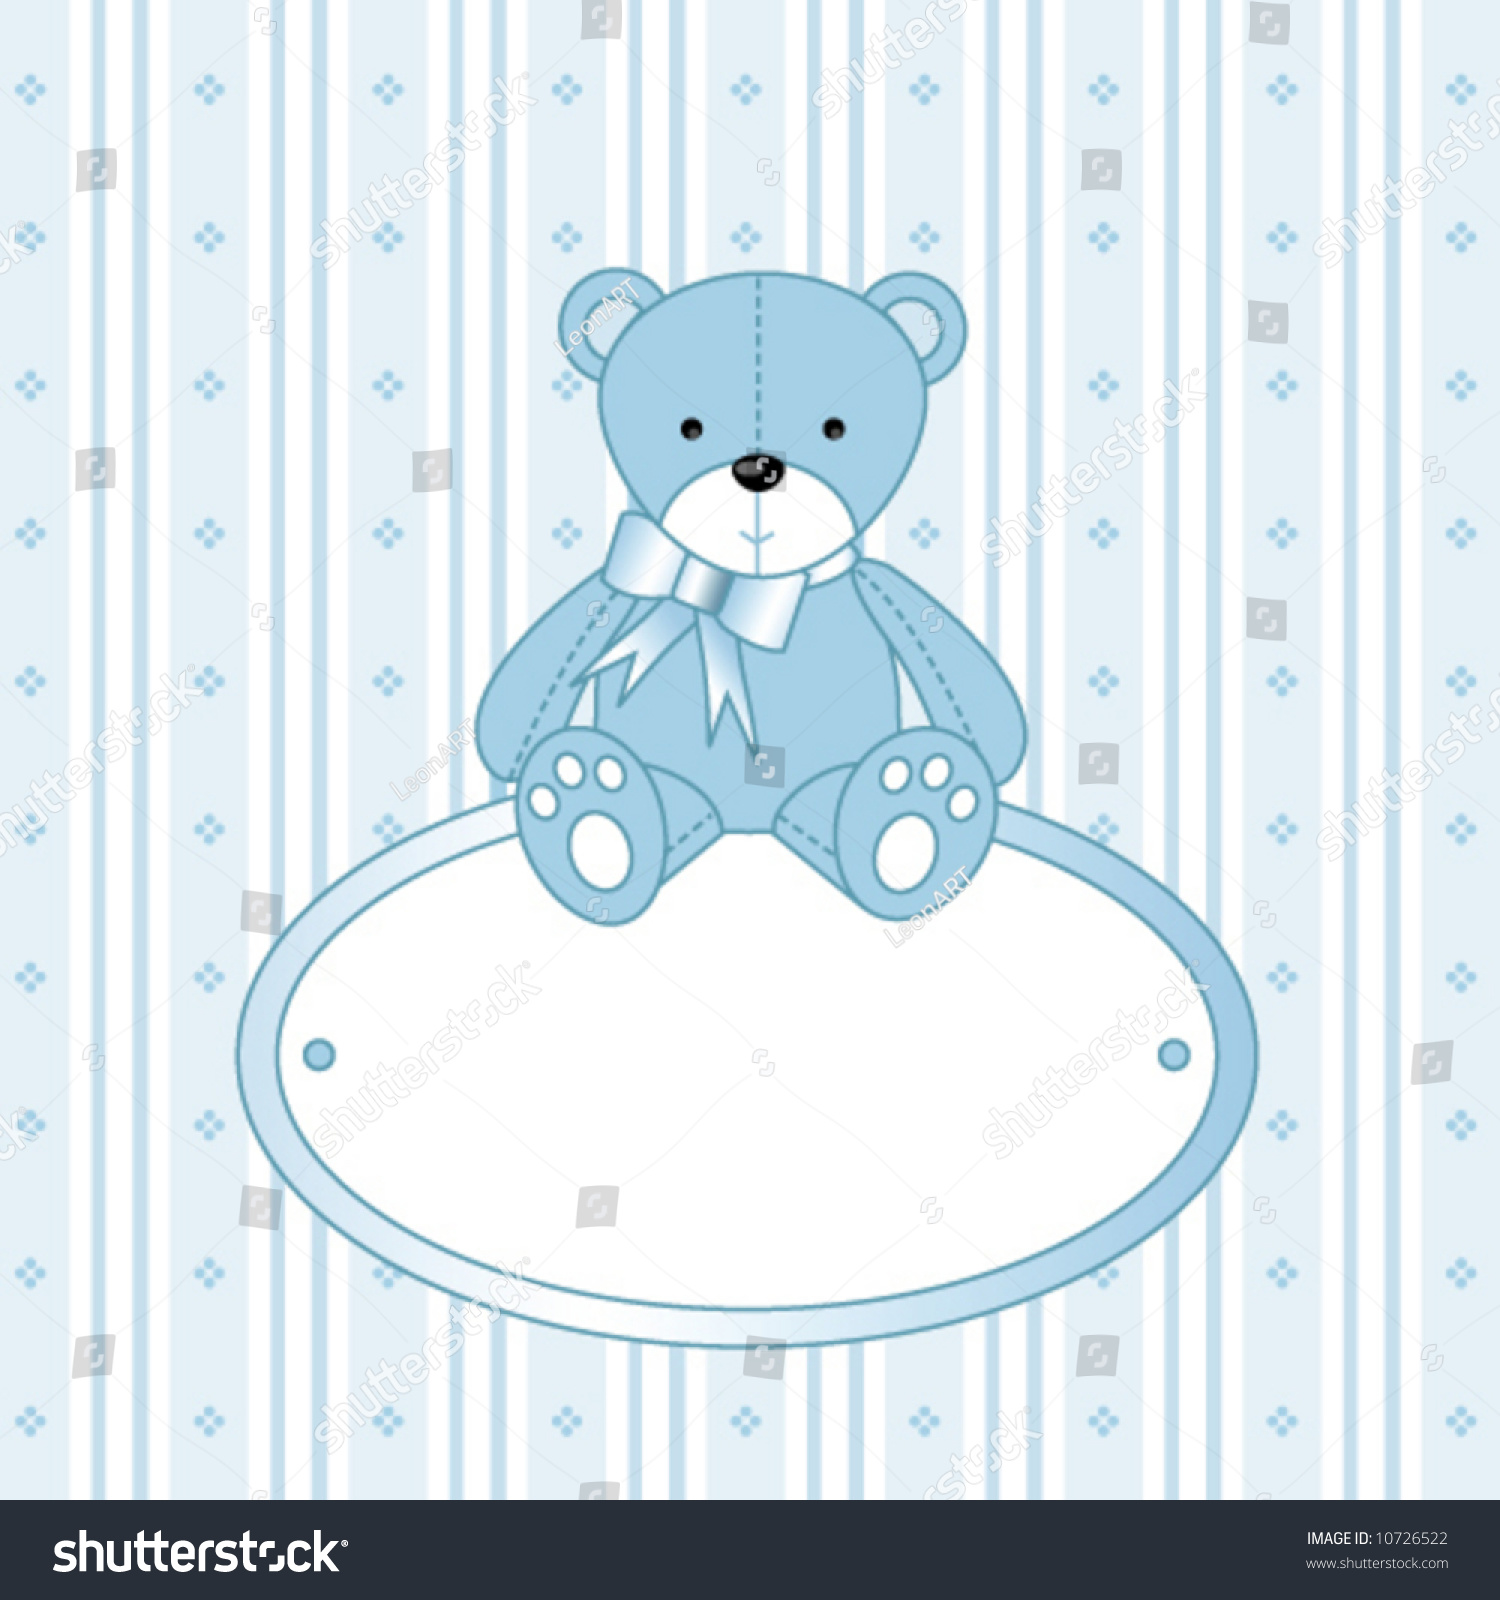 Baby Shower Baby Card Invitation Template Vector 10726522 – Card Invitation Template